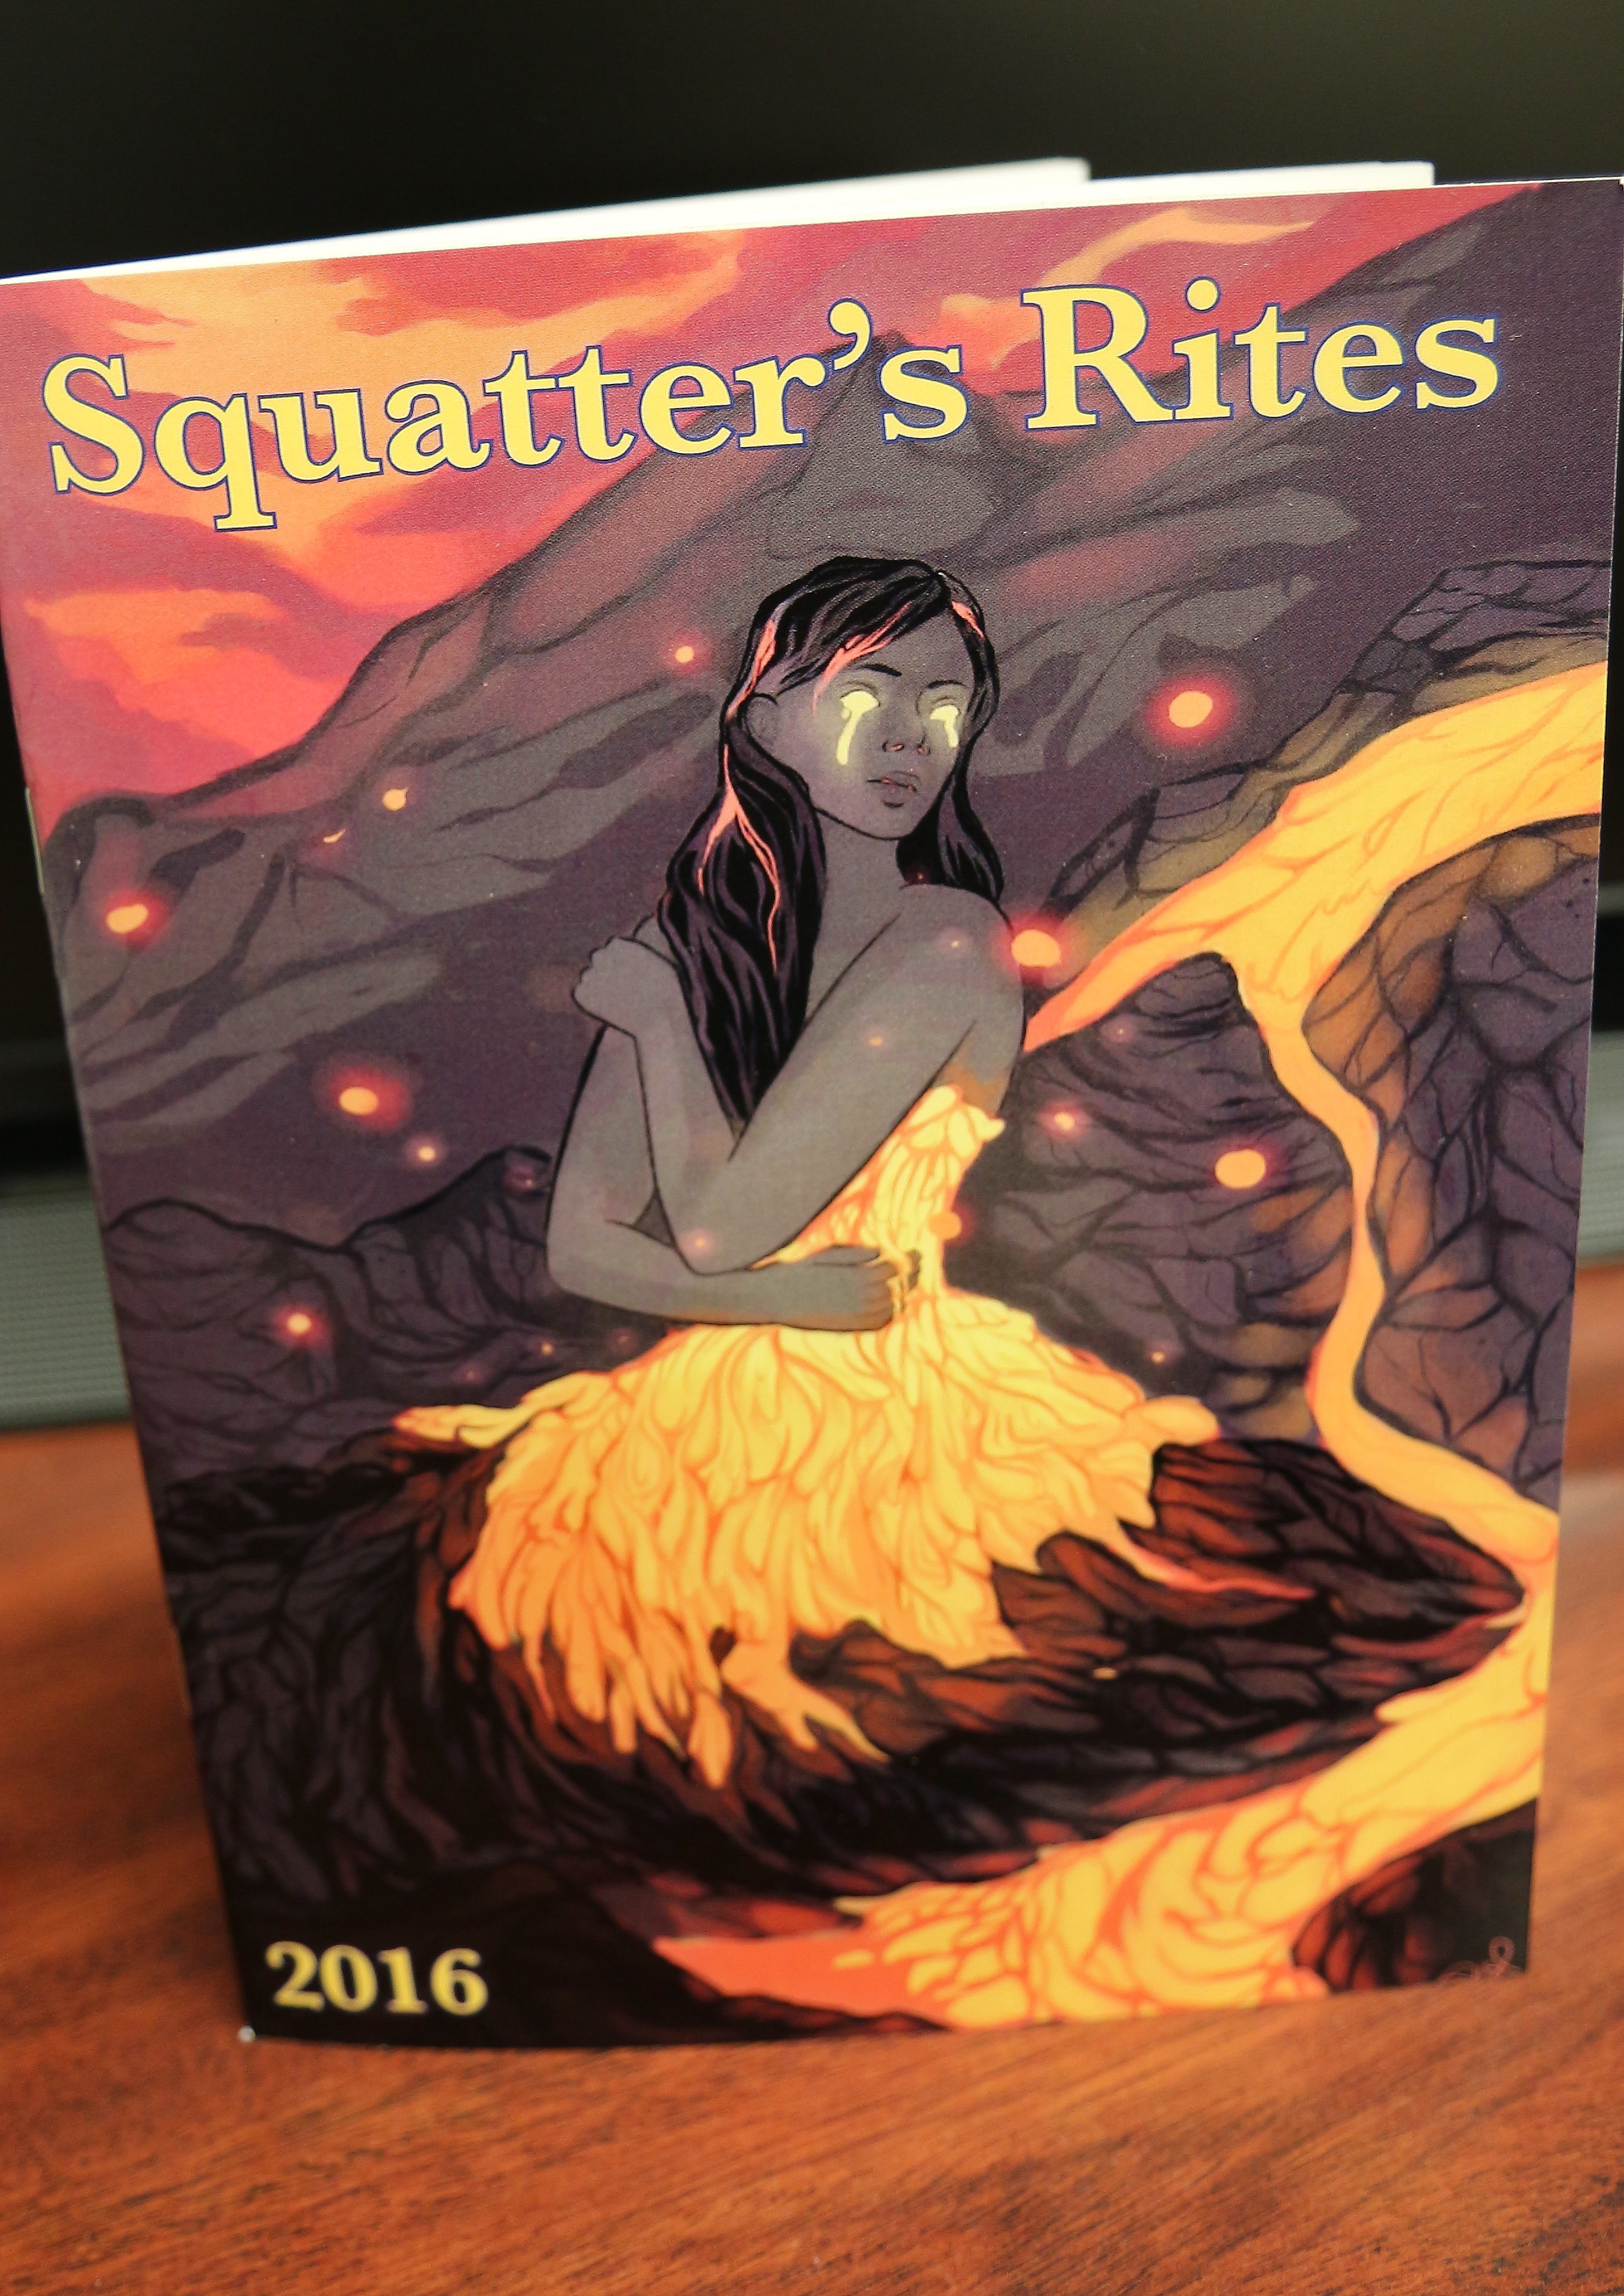 1462306806 squatter's rites cover 2016